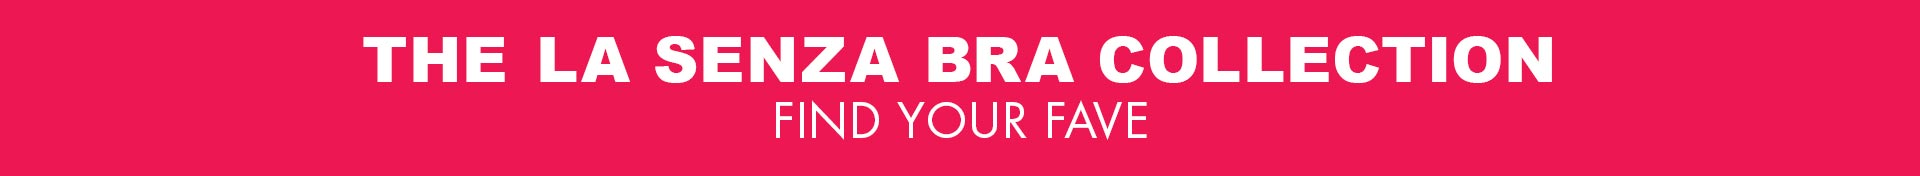 The La Senza bra collection. Find your fave.